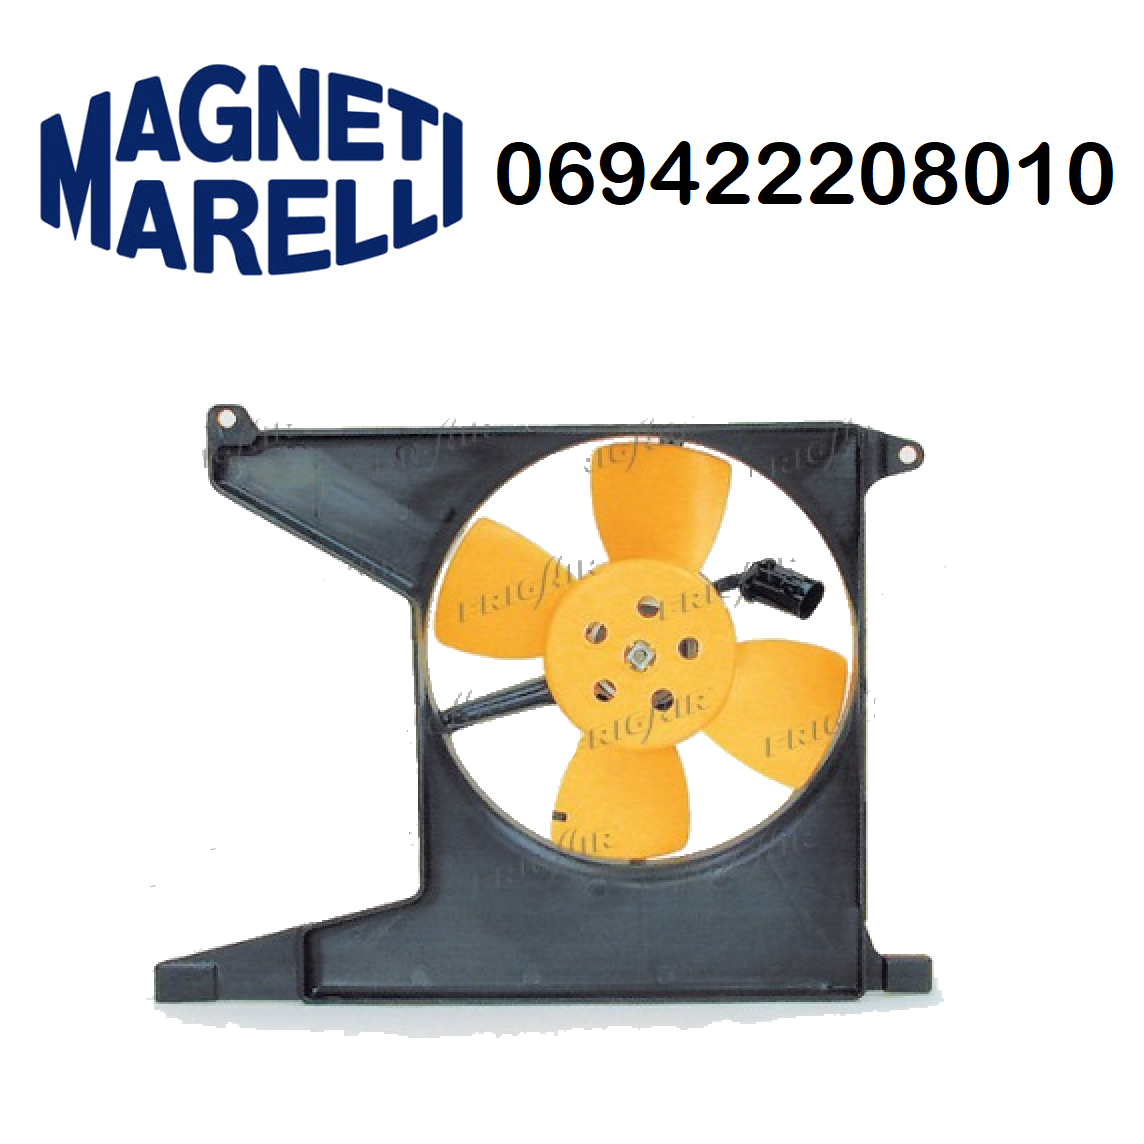 OPEL ASTRA ENGINE COOLING FAN - CORSA - VECTRA MARELLI FOR 1314528